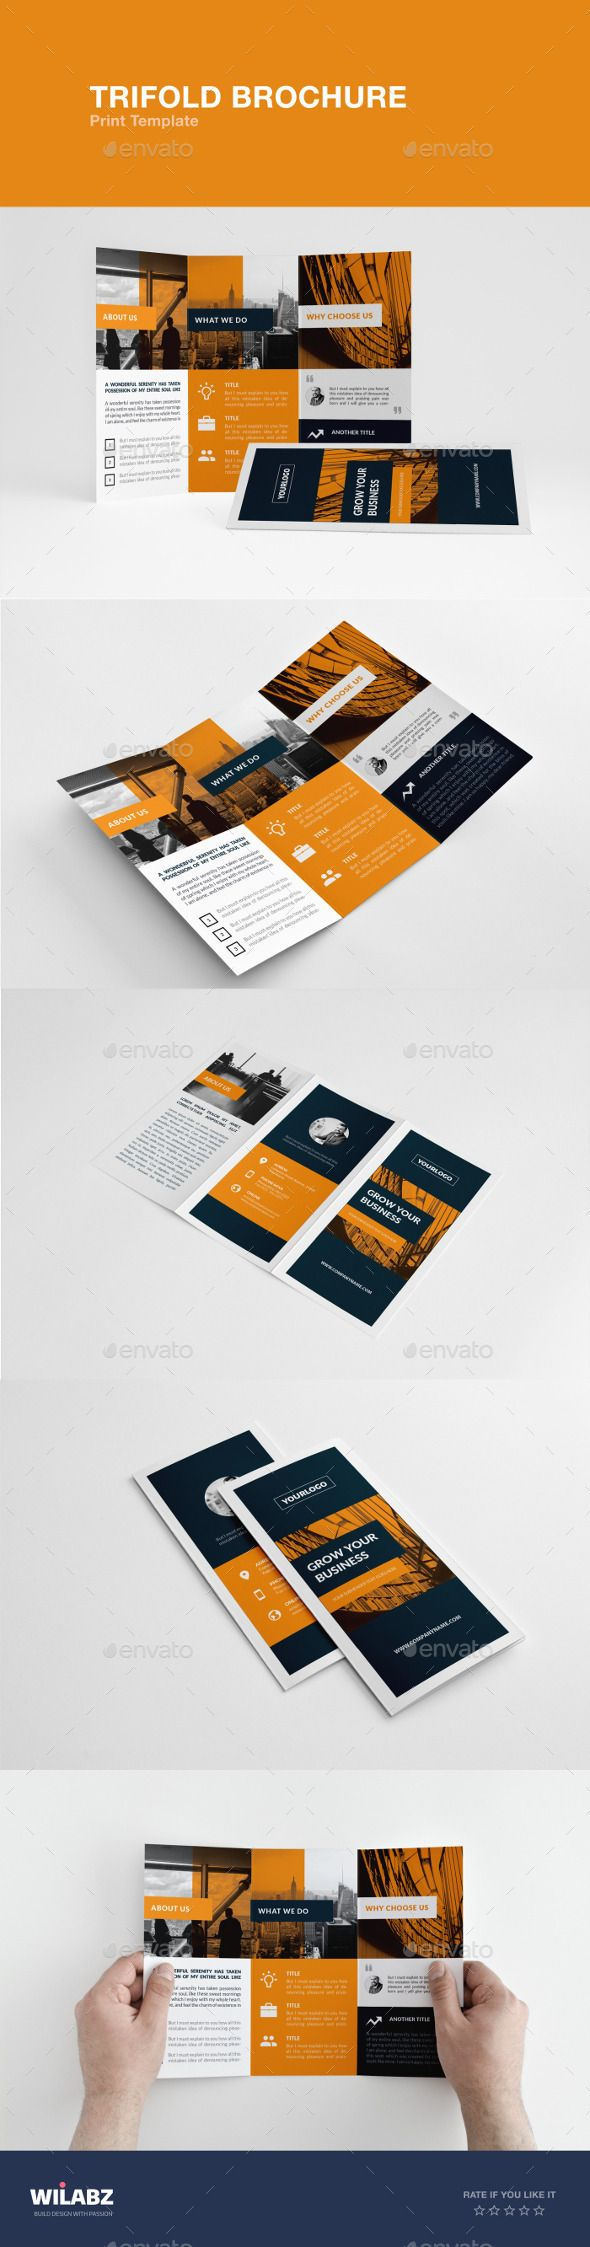 Best Brochure Template Ideas On Pinterest Brochure Design - Elegant brochure templates